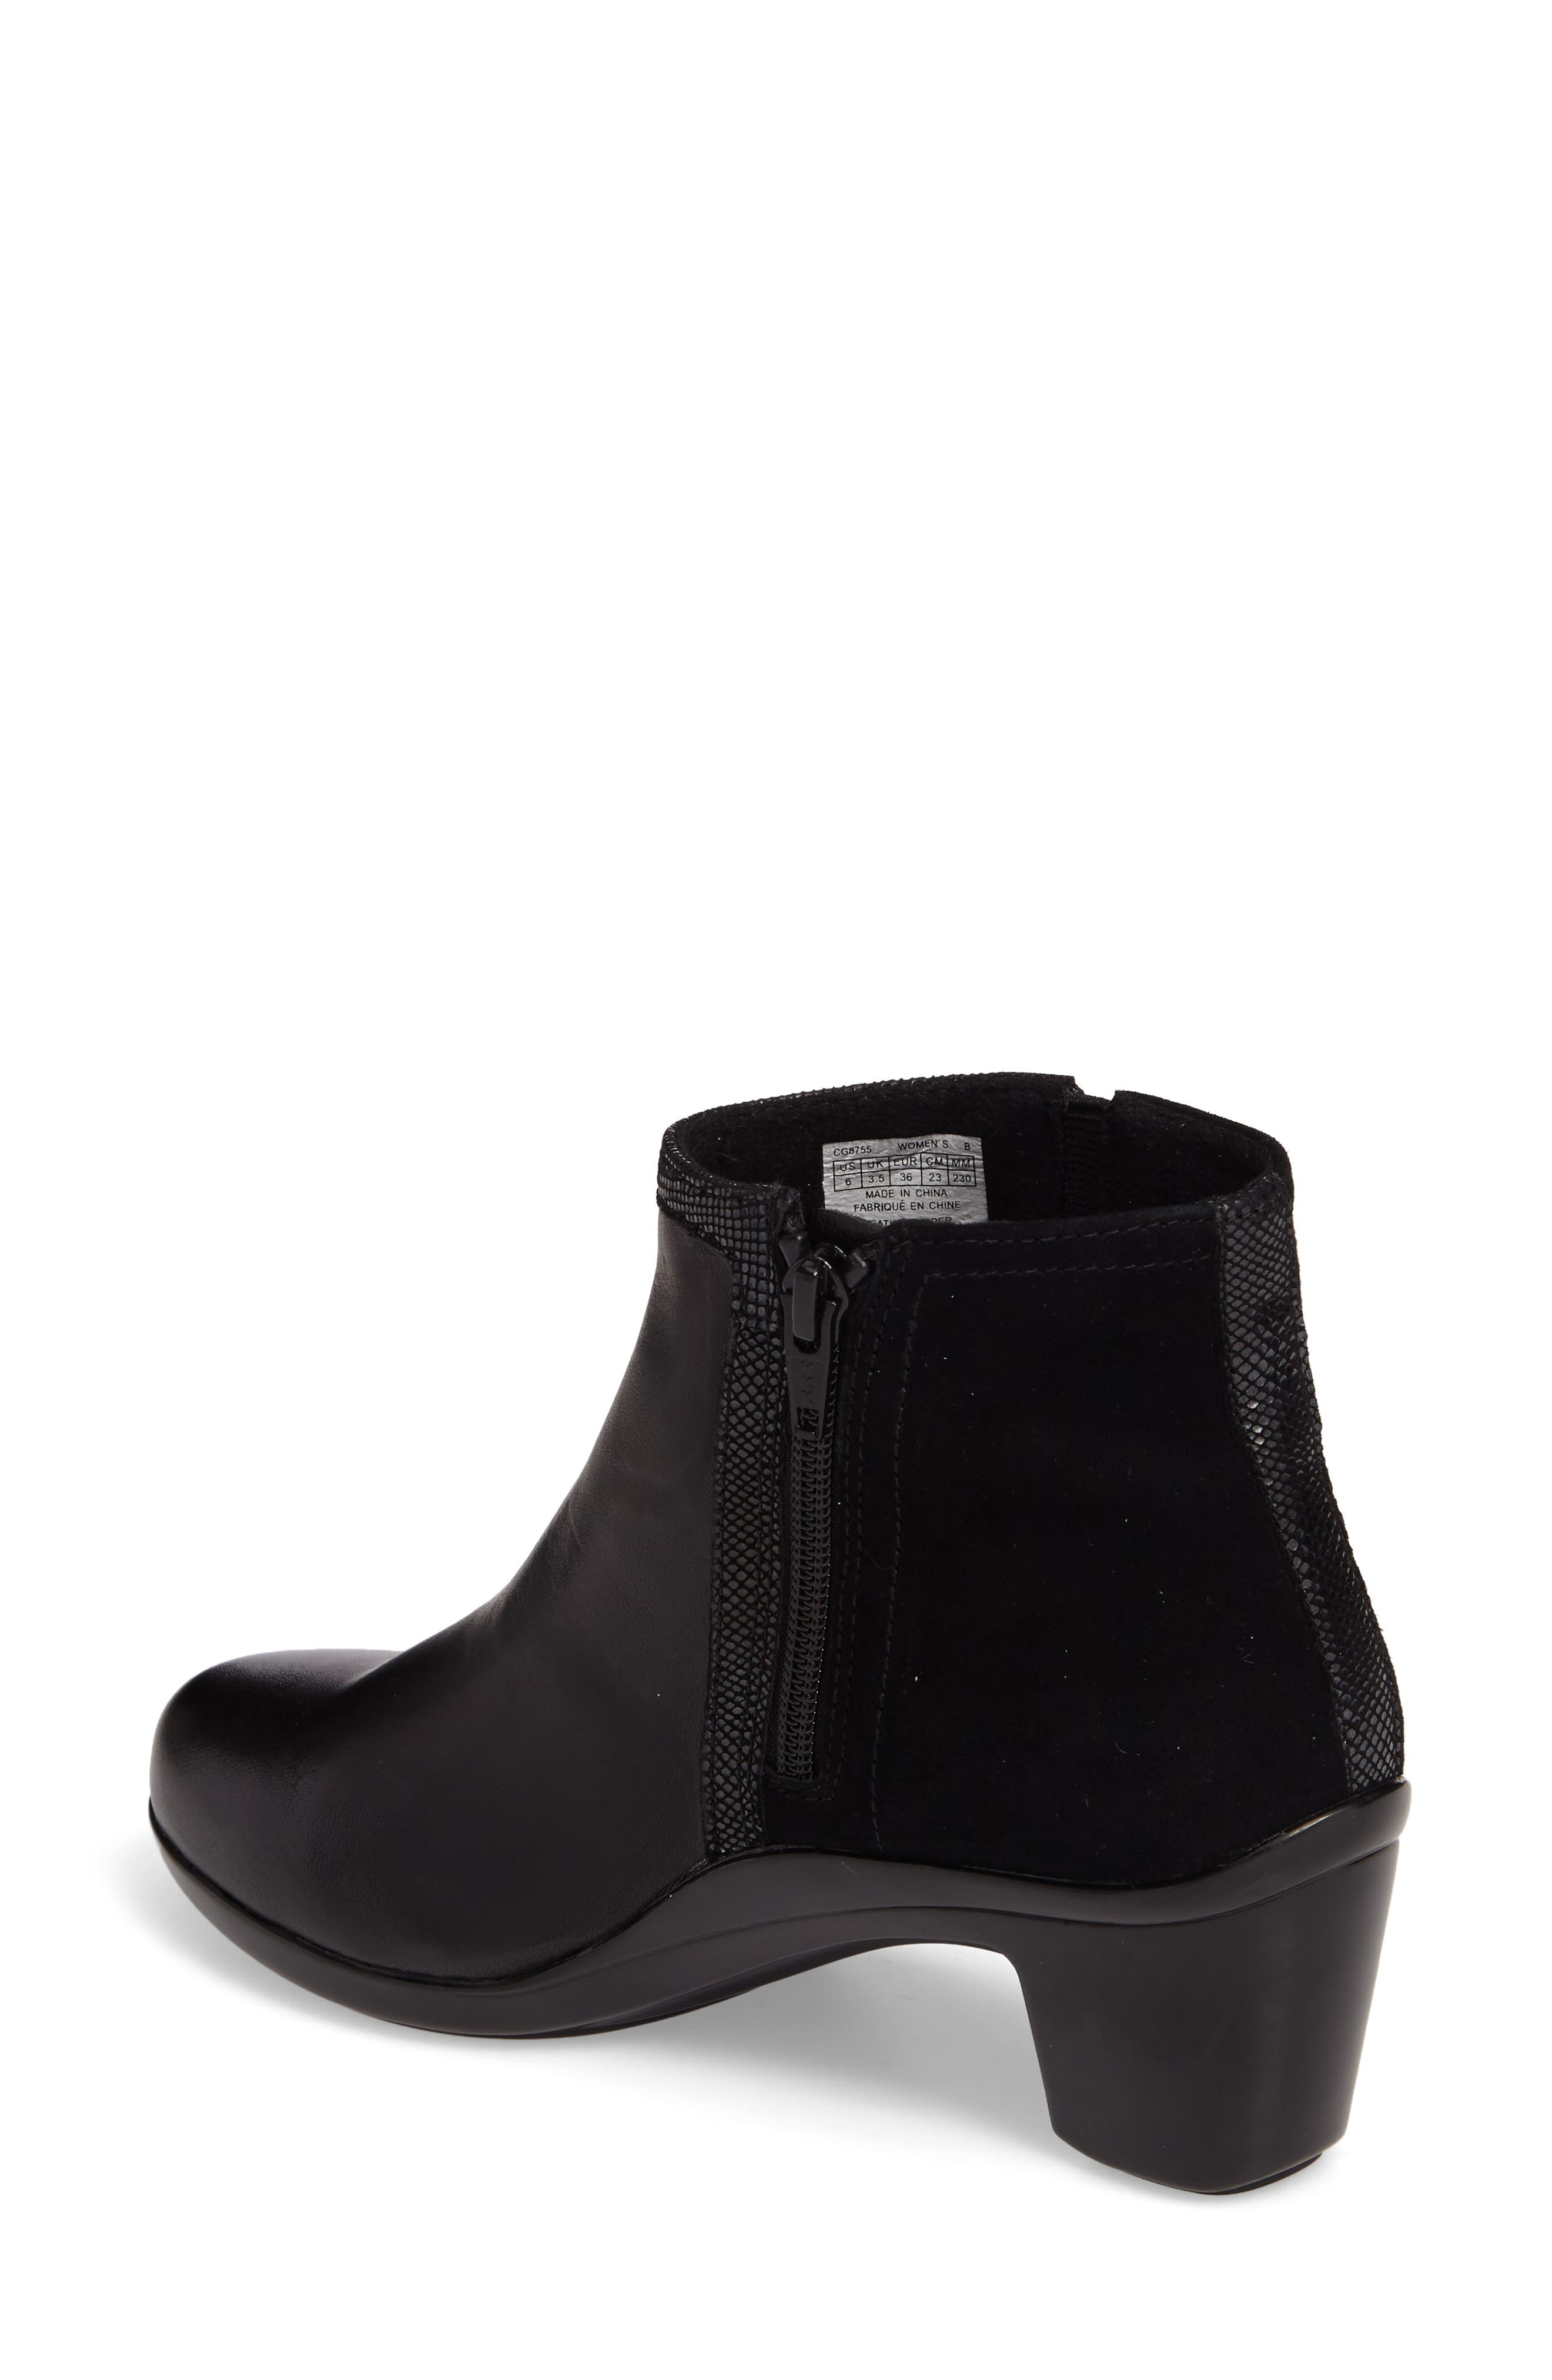 Lexee Wateproof Bootie,                             Alternate thumbnail 2, color,                             Black Leather